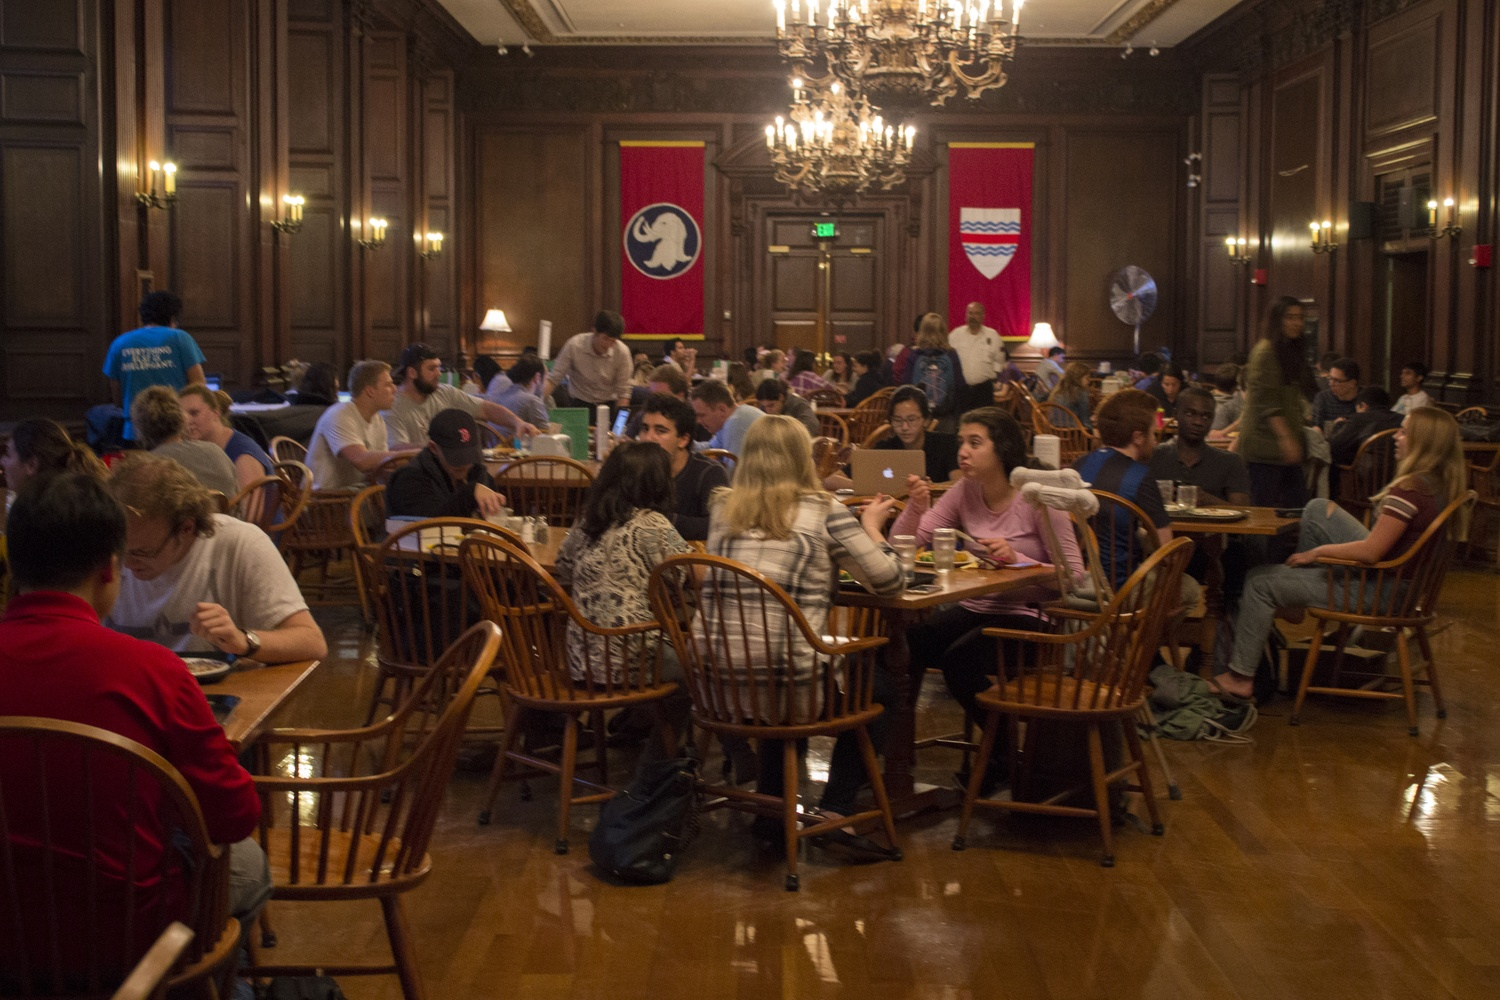 Just days before a proposed strike by Harvard University Dining workers, Eliot House residents dine on dessert. Harvard is stockpiling frozen foods in its dining halls ahead of a potential strike by Harvard's dining services workers, according to workers stationed across the College's dining halls.